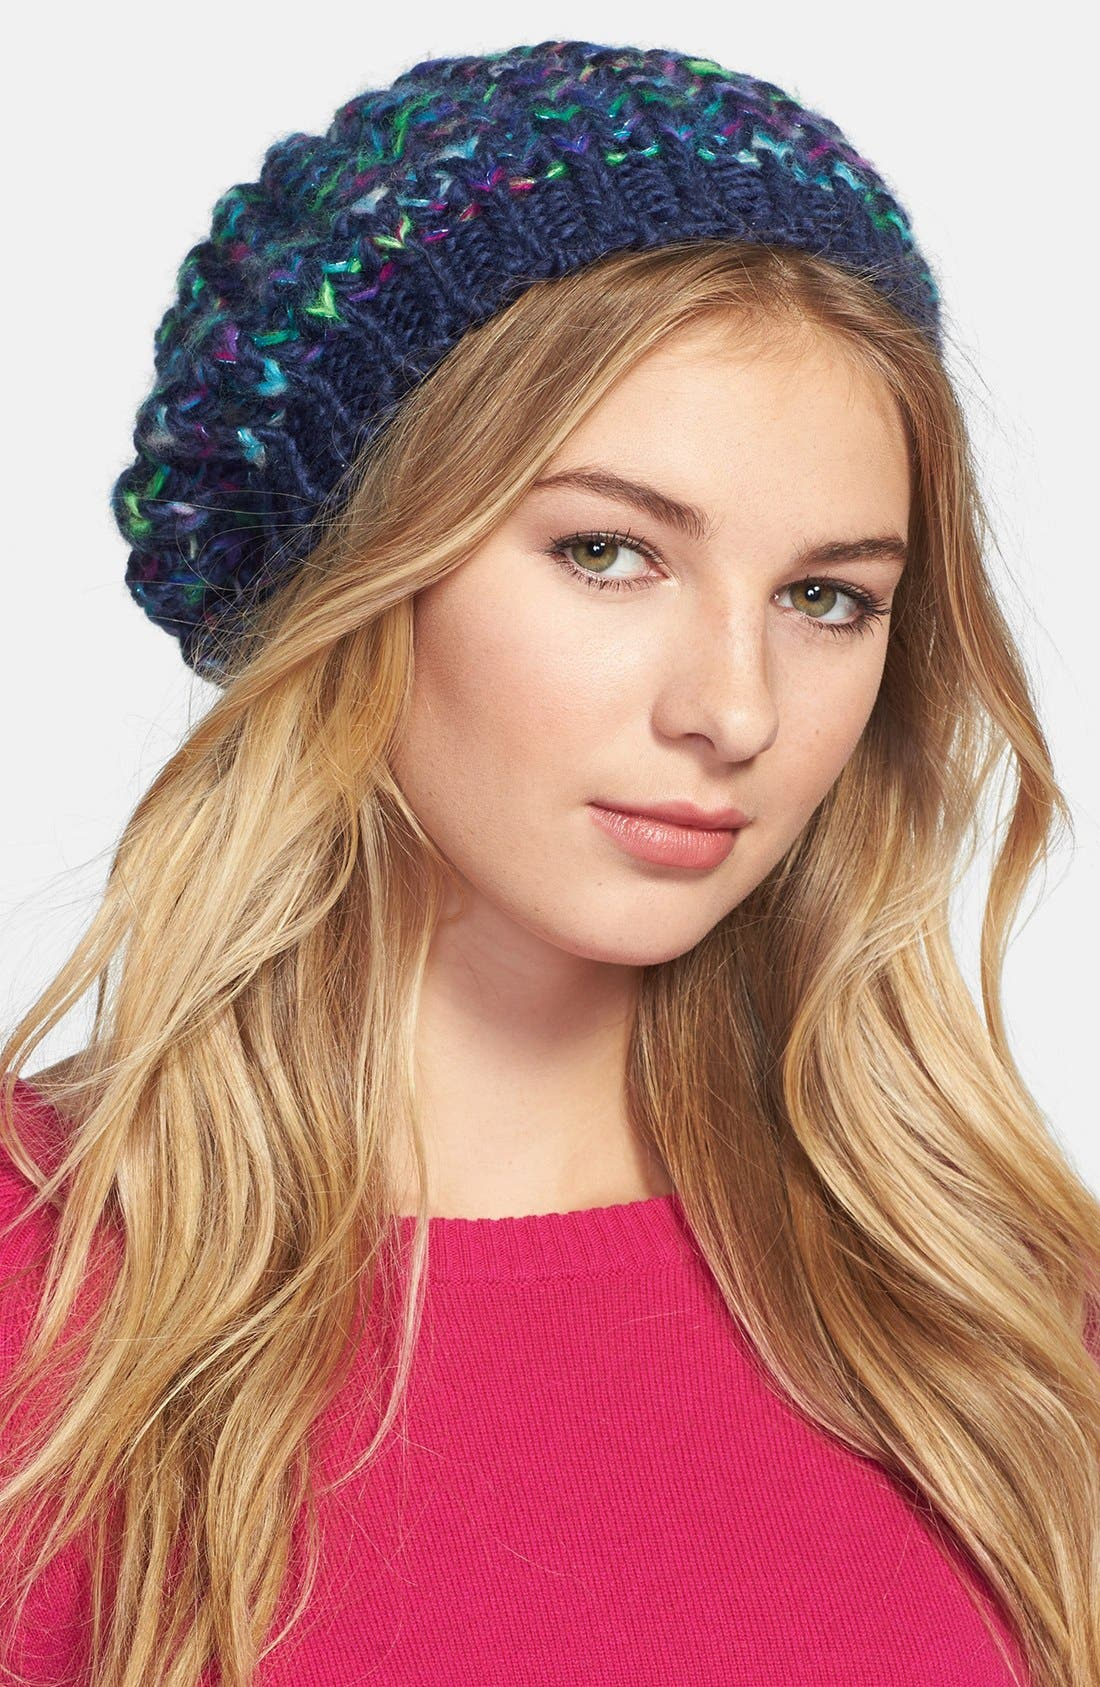 Alternate Image 1 Selected - Steve Madden 'Taste the Rainbow' Knit Beret (Special Purchase)